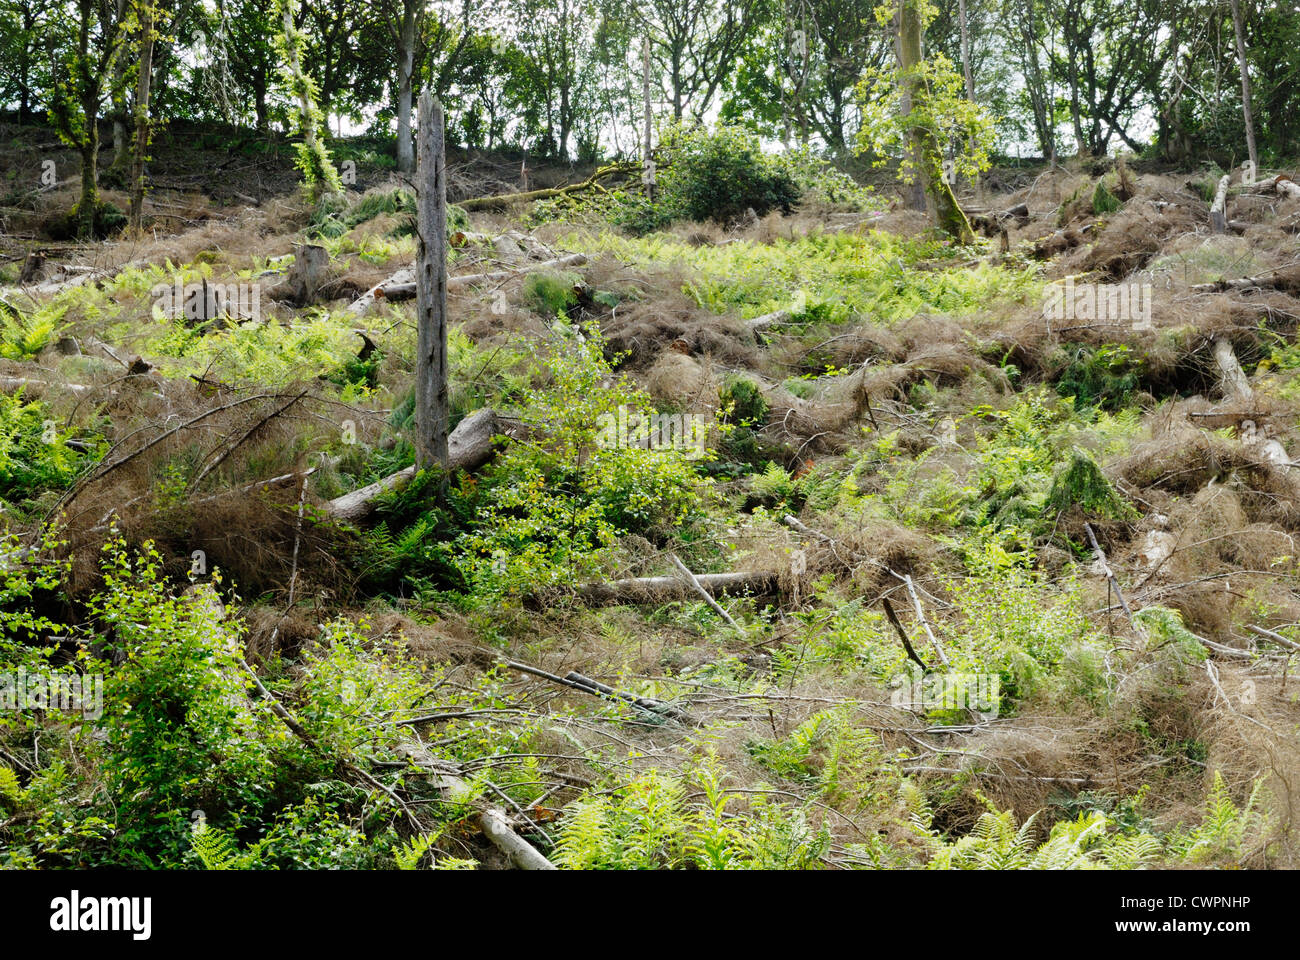 Ferns growing in Spring on land cleared as fell to waste, restoring conifer forest to Semi Natural woodland, Wales. - Stock Image